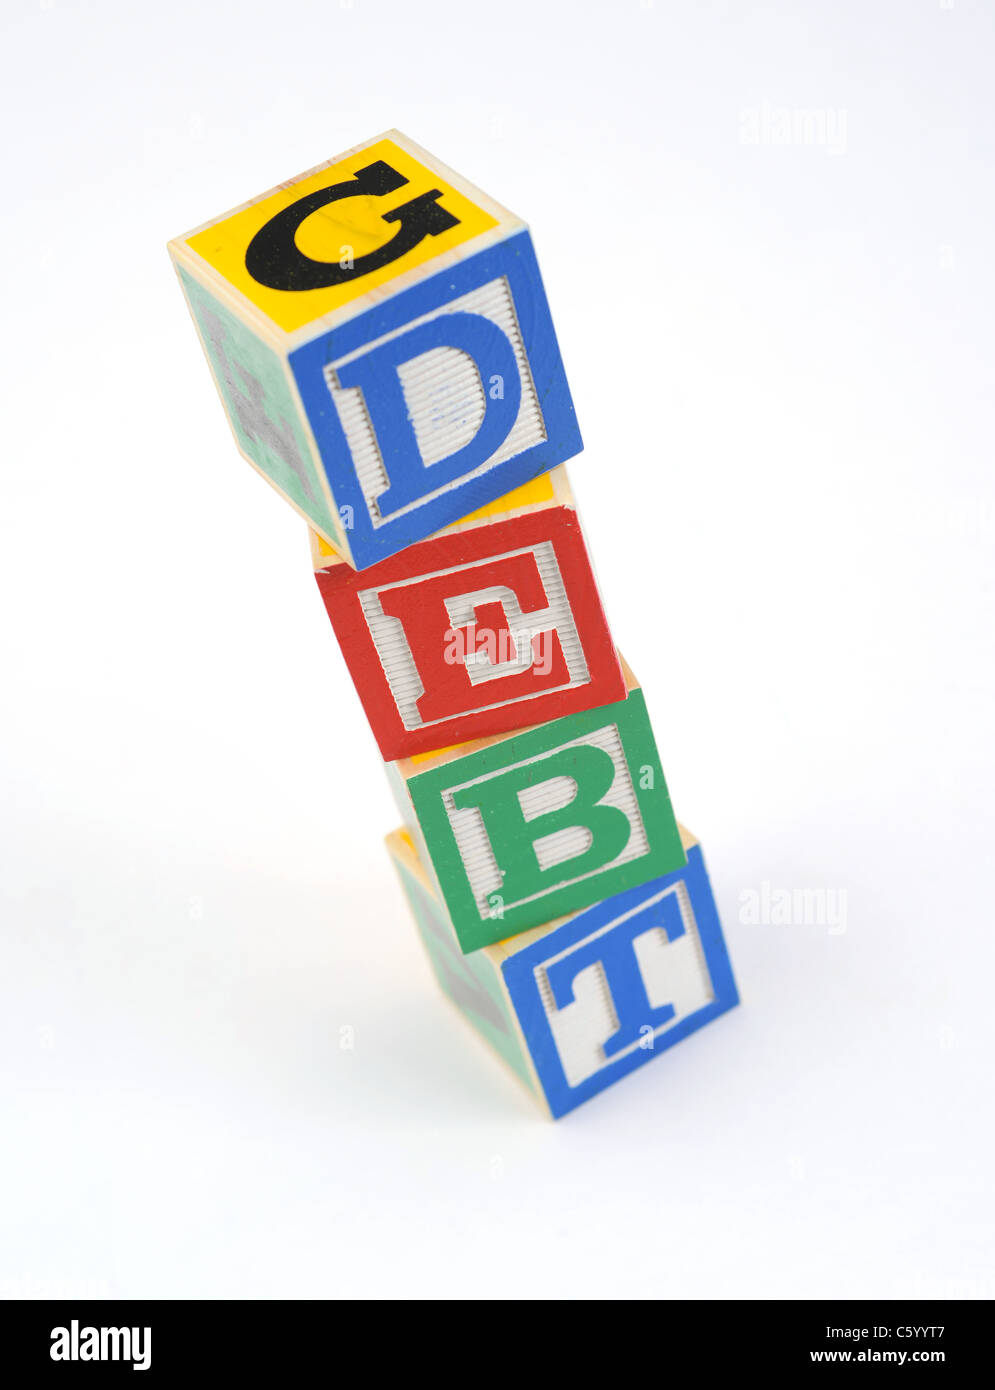 the word 'debt' spelled out with children's letter blocks - Stock Image